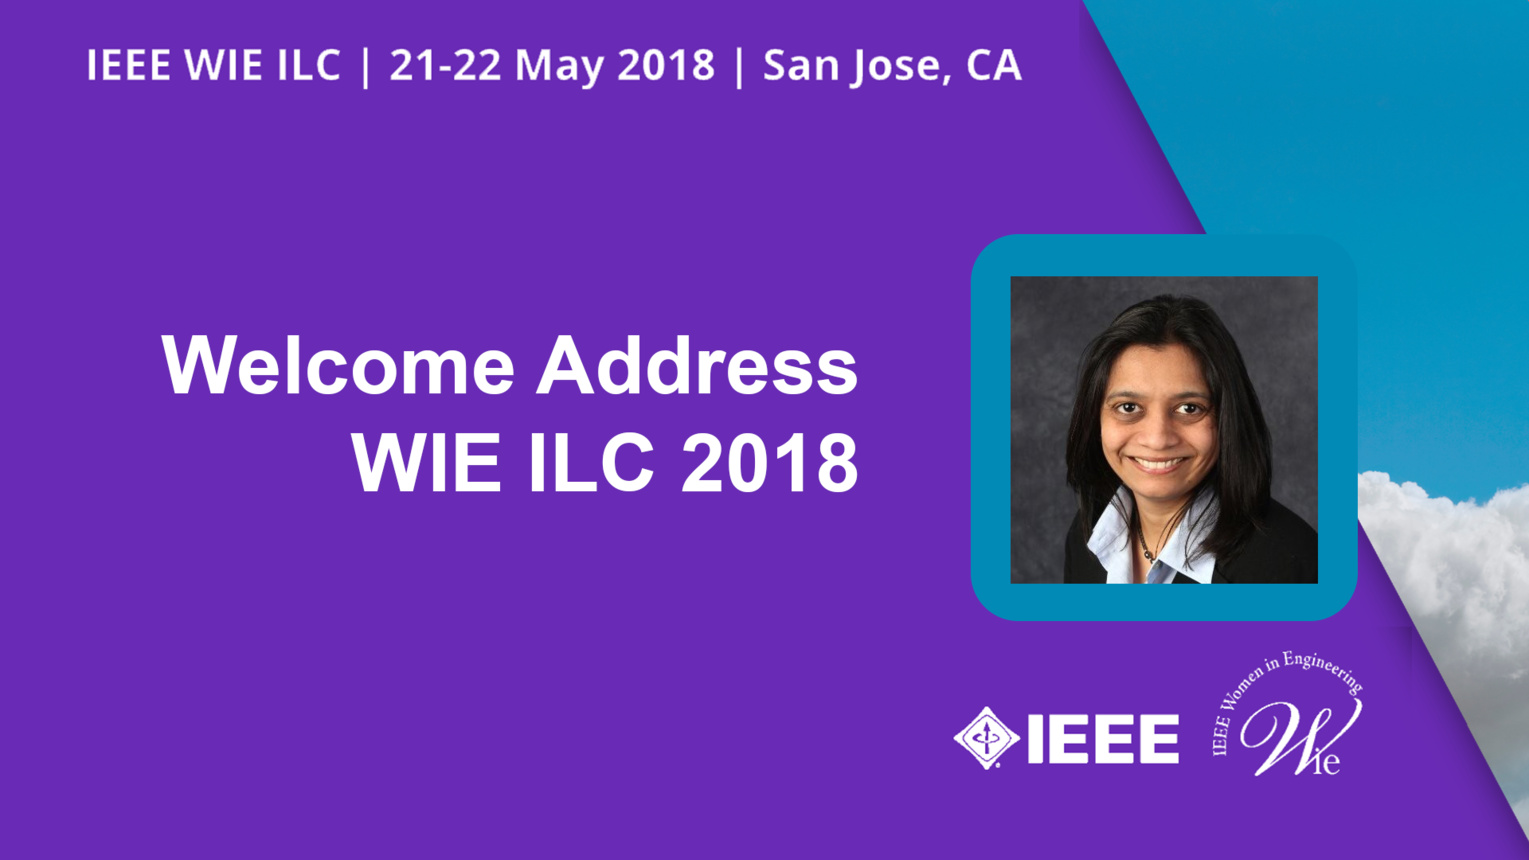 Welcome Address - Nita Patel - WIE ILC 2018